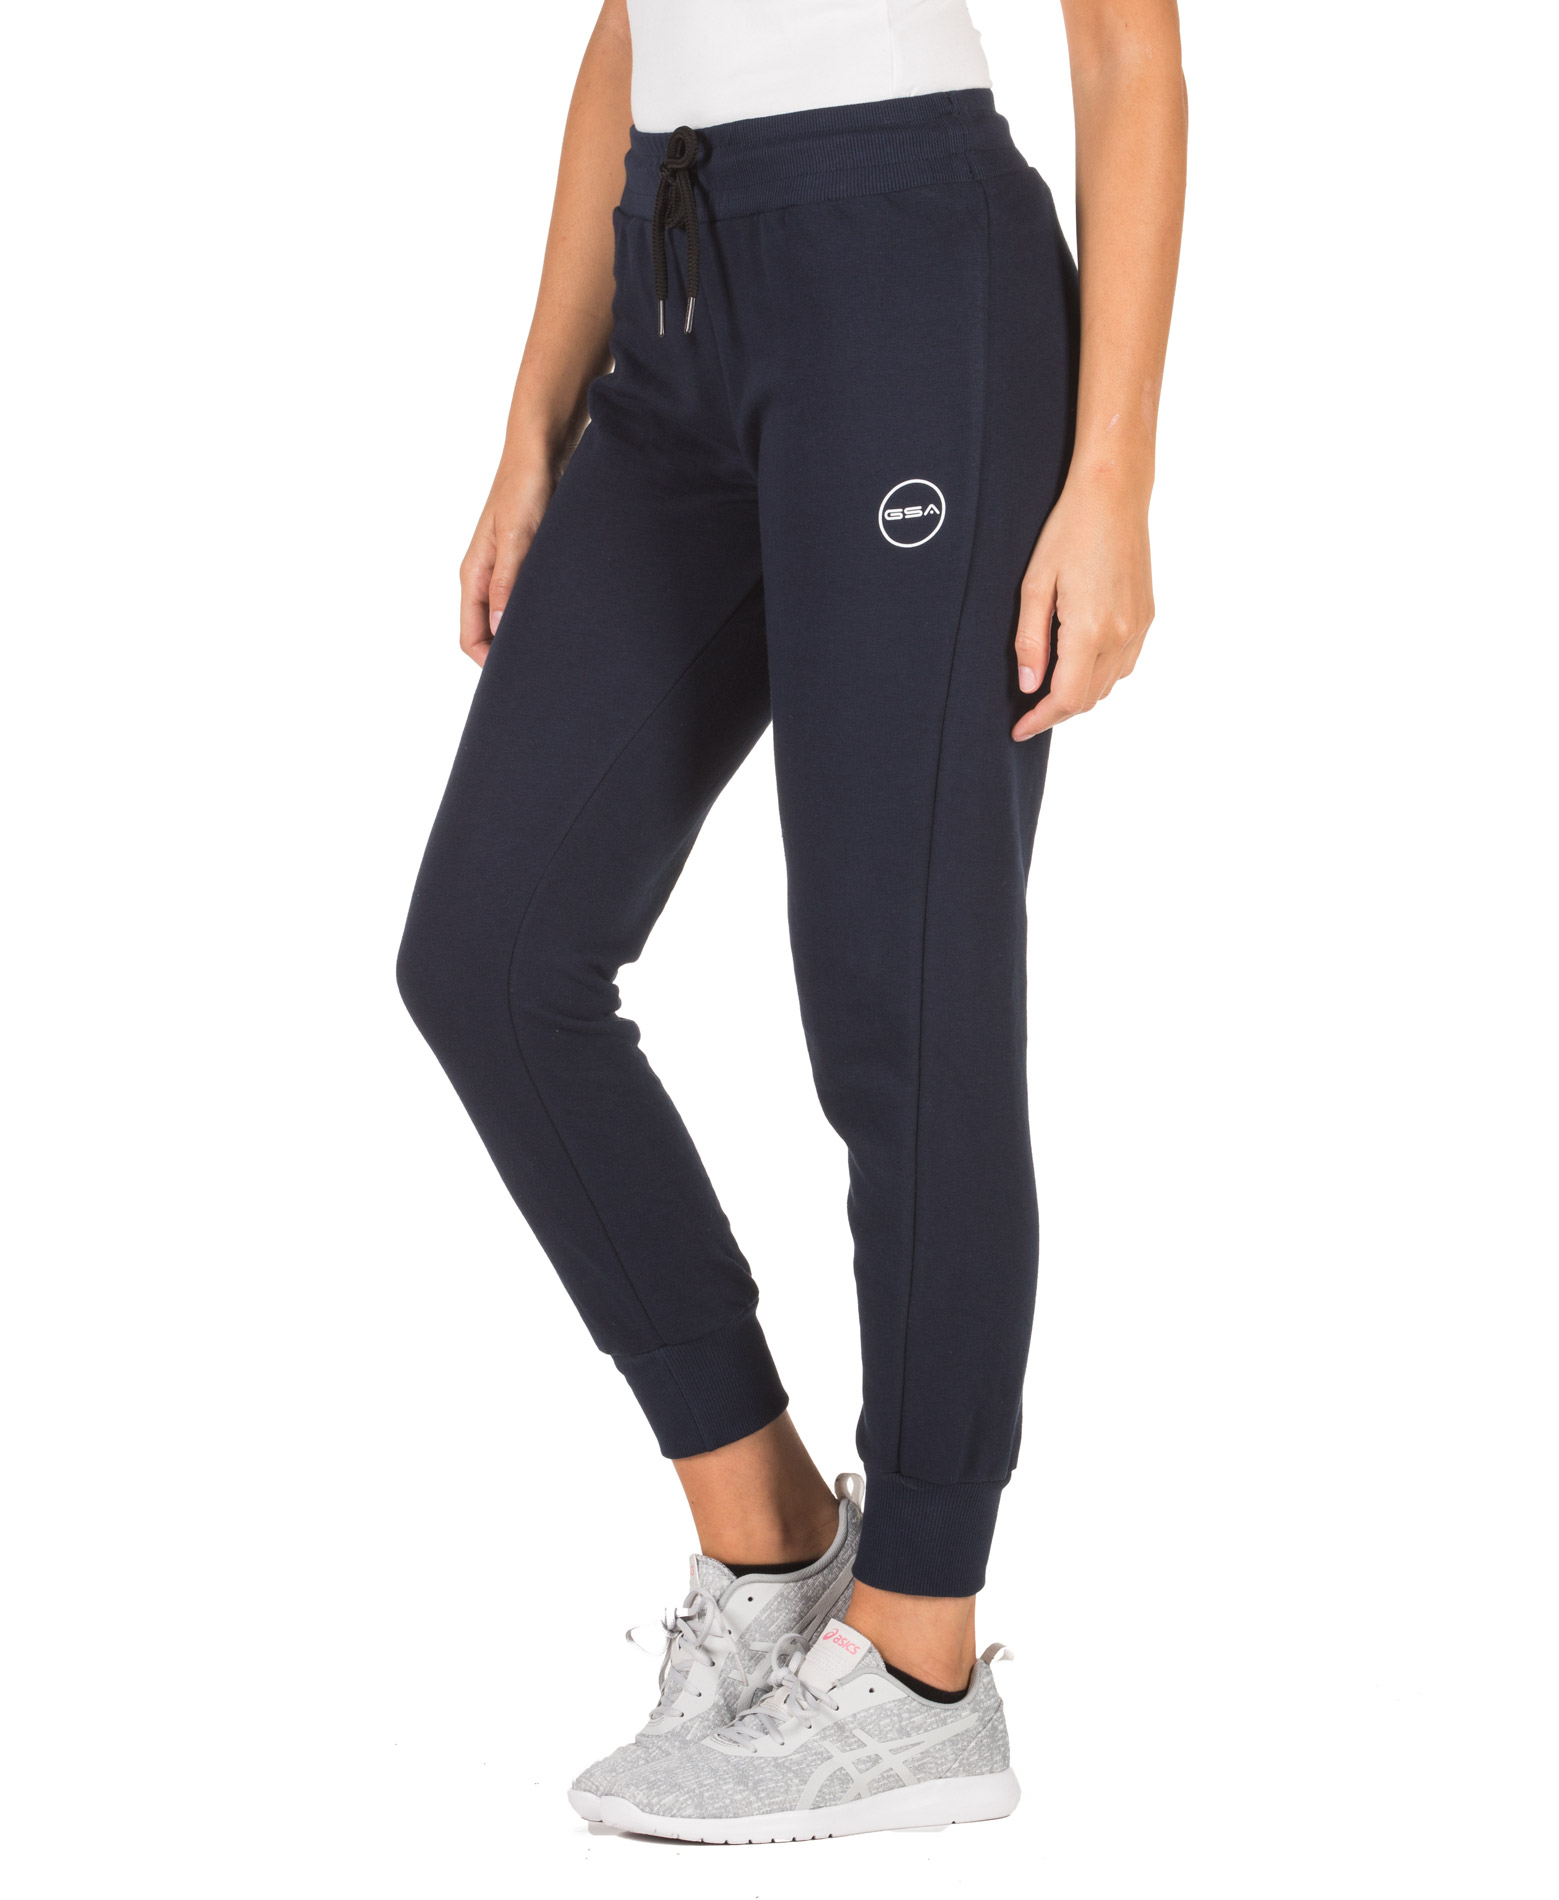 GSA SWEATPANTS WMN TEMPO JOGGER 17-28031-INK Μπλε